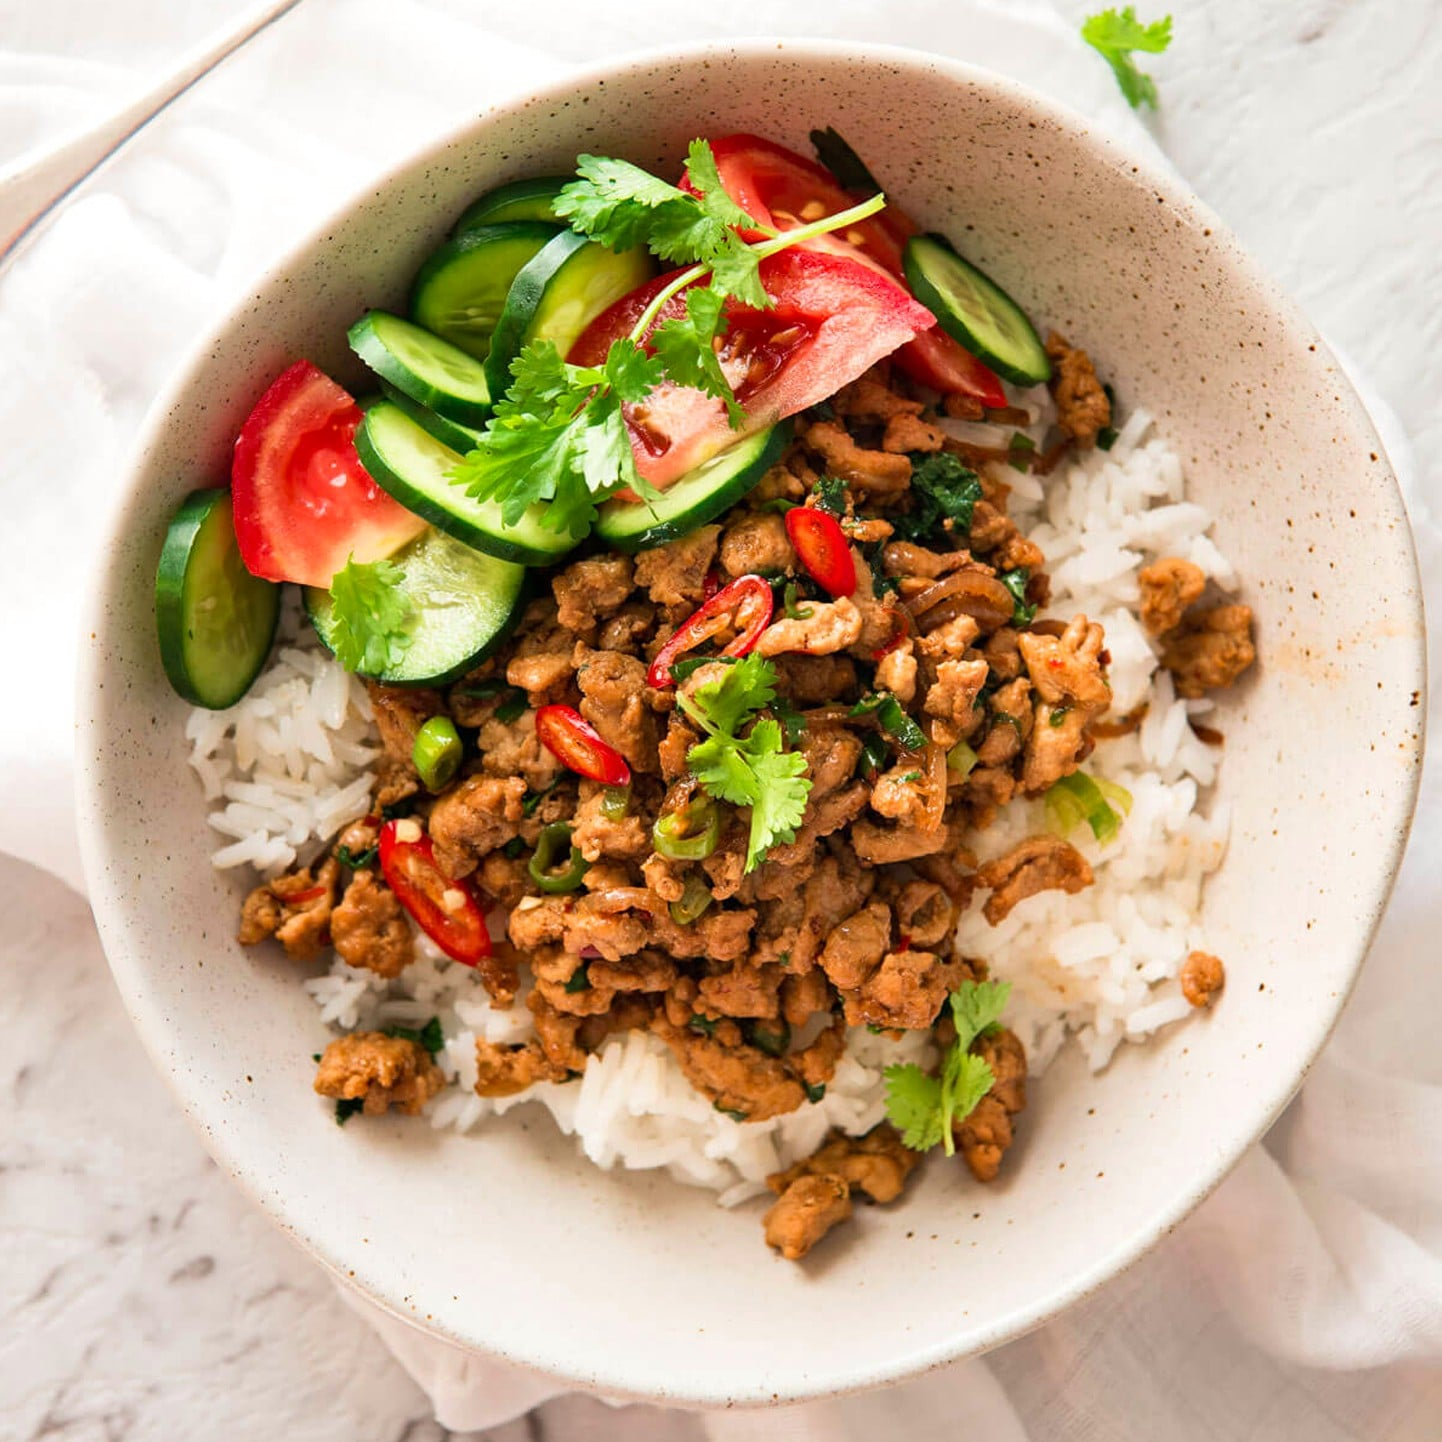 May 07,  · One 4-ounce serving of cooked ground beef has more than twice the calories of ground turkey and 7 times the fat of ground chicken. And that's for the 90% lean beef. 10 Healthy .